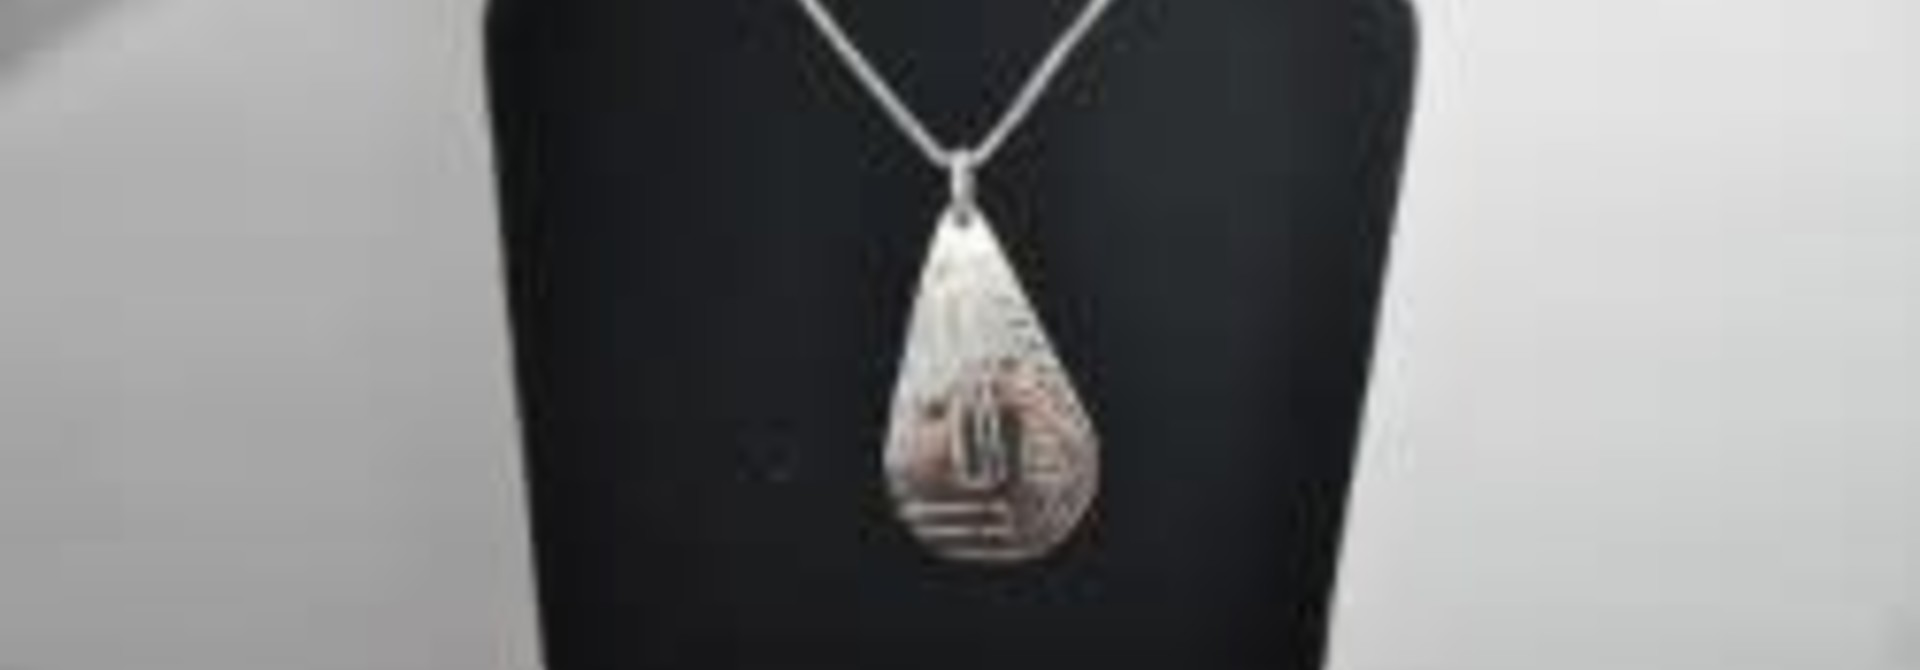 Silver Carved Pendant-Wolf design by Vincent Henson